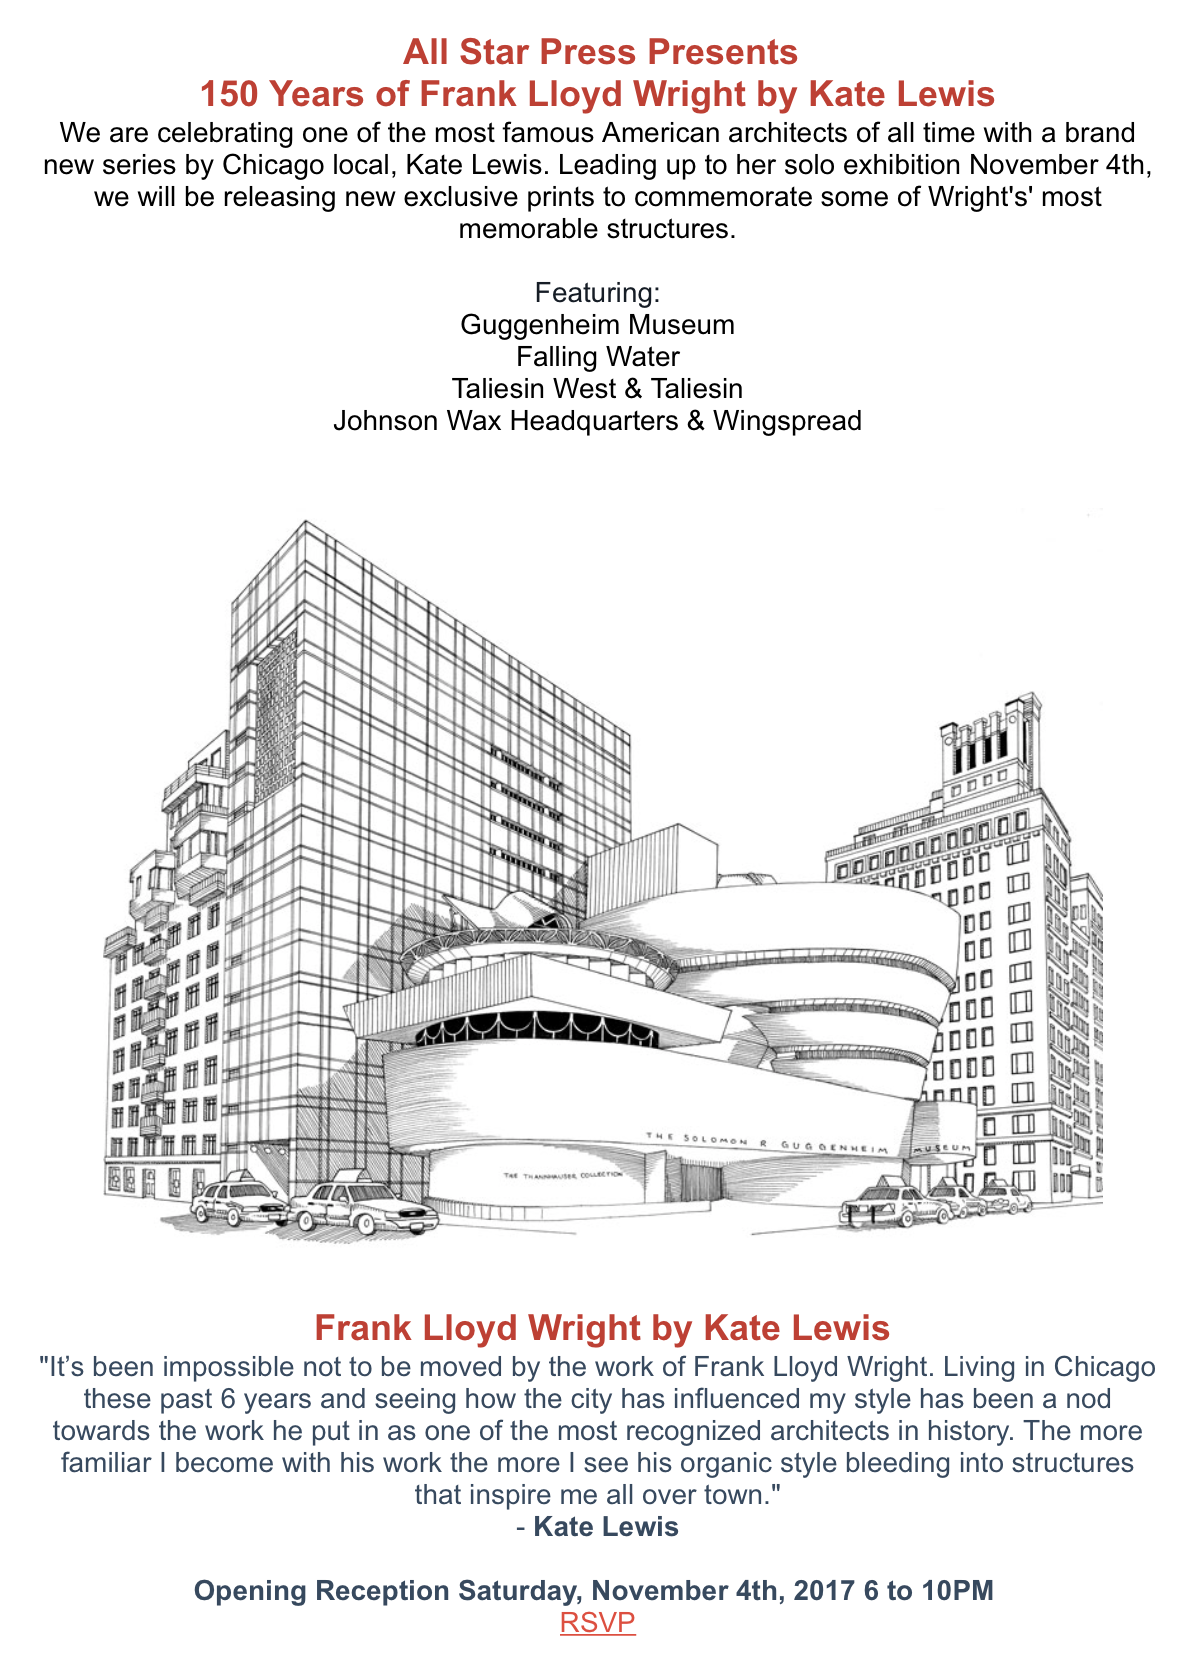 All Star Press - 150 Years of Frank Lloyd Wright by Kate Lewis